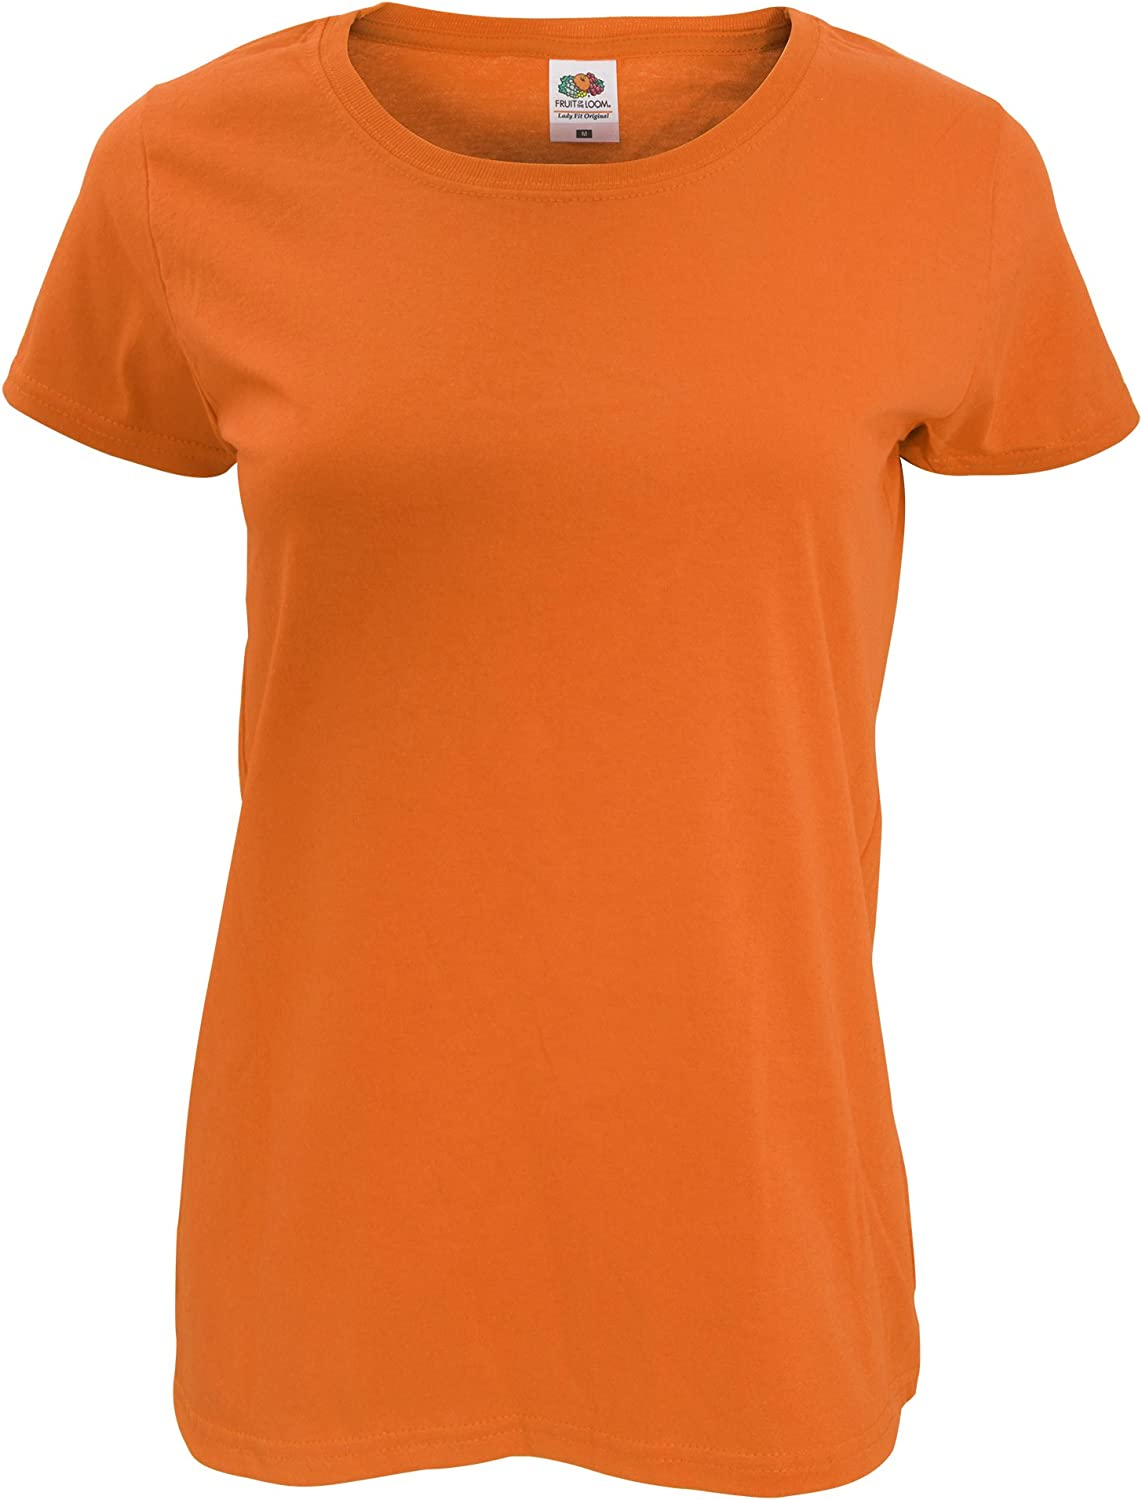 T-shirt Donna FRUIT OF THE LOOM Aderente LADY-FIT Maglietta//MAGLIA Manica Lunga